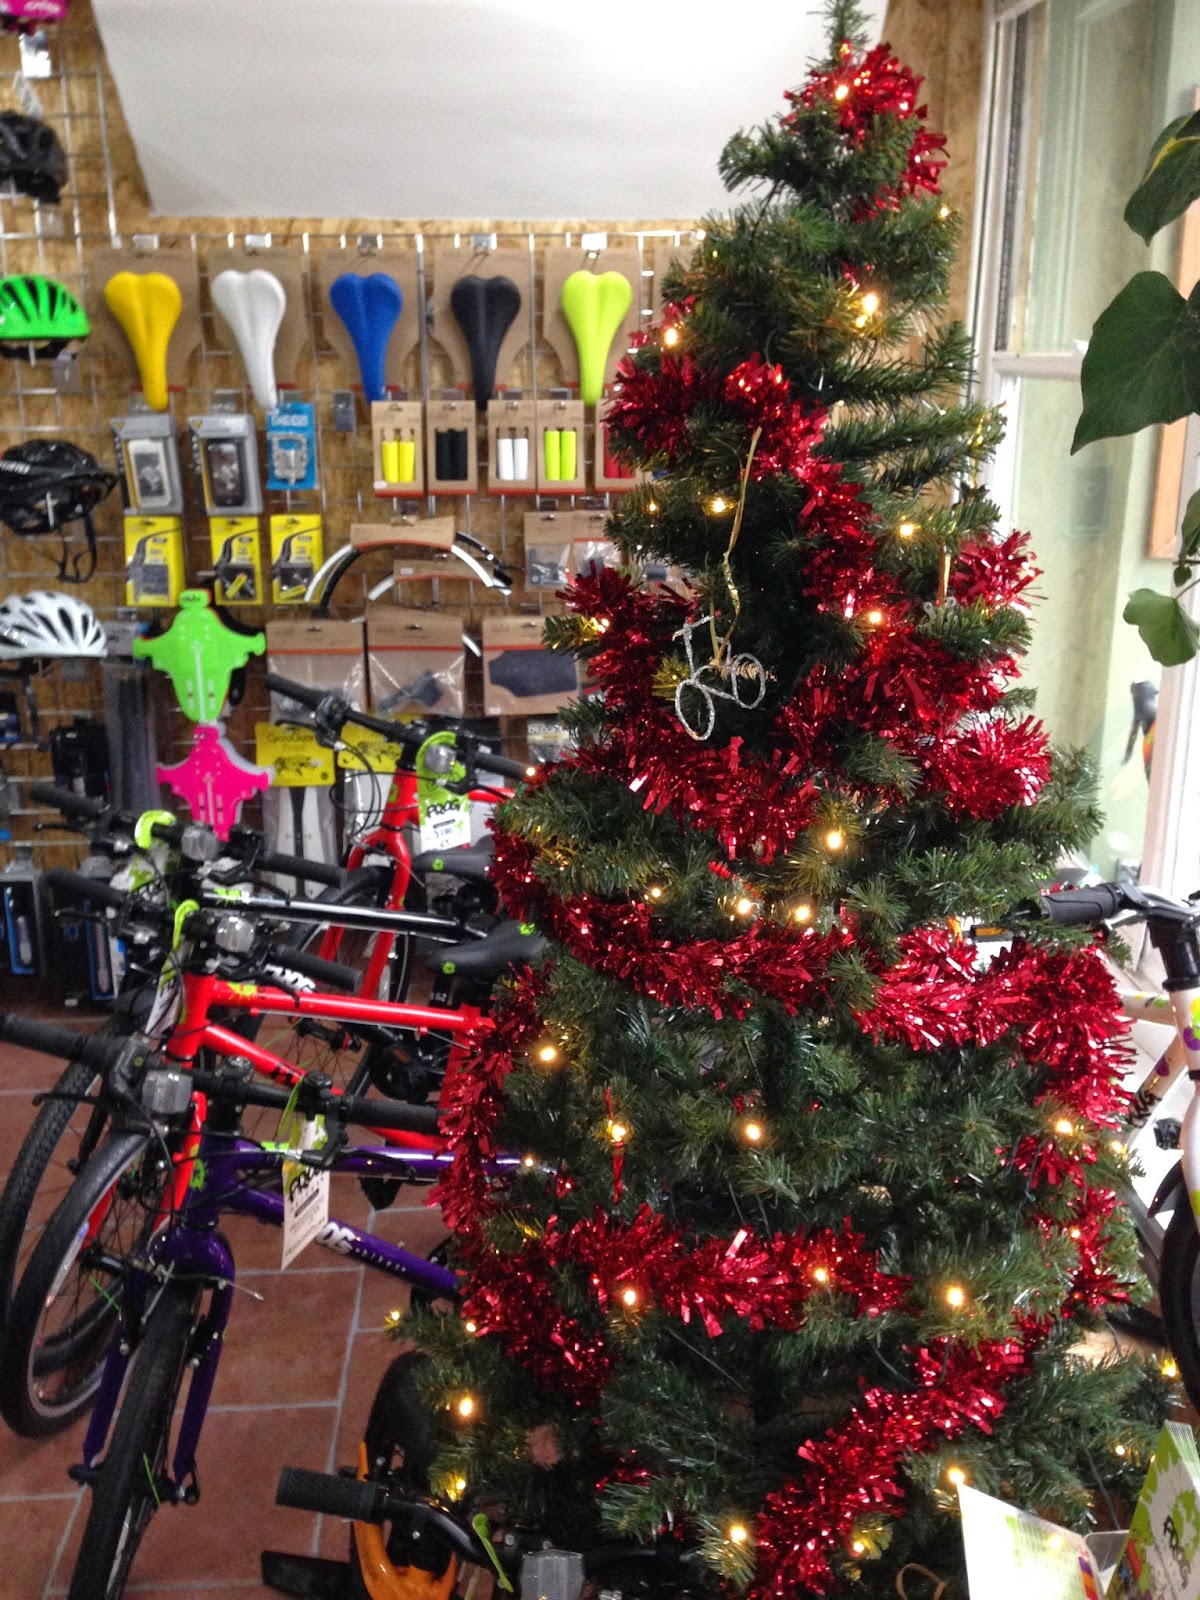 Frog lightweight bikes under the Christmas tree